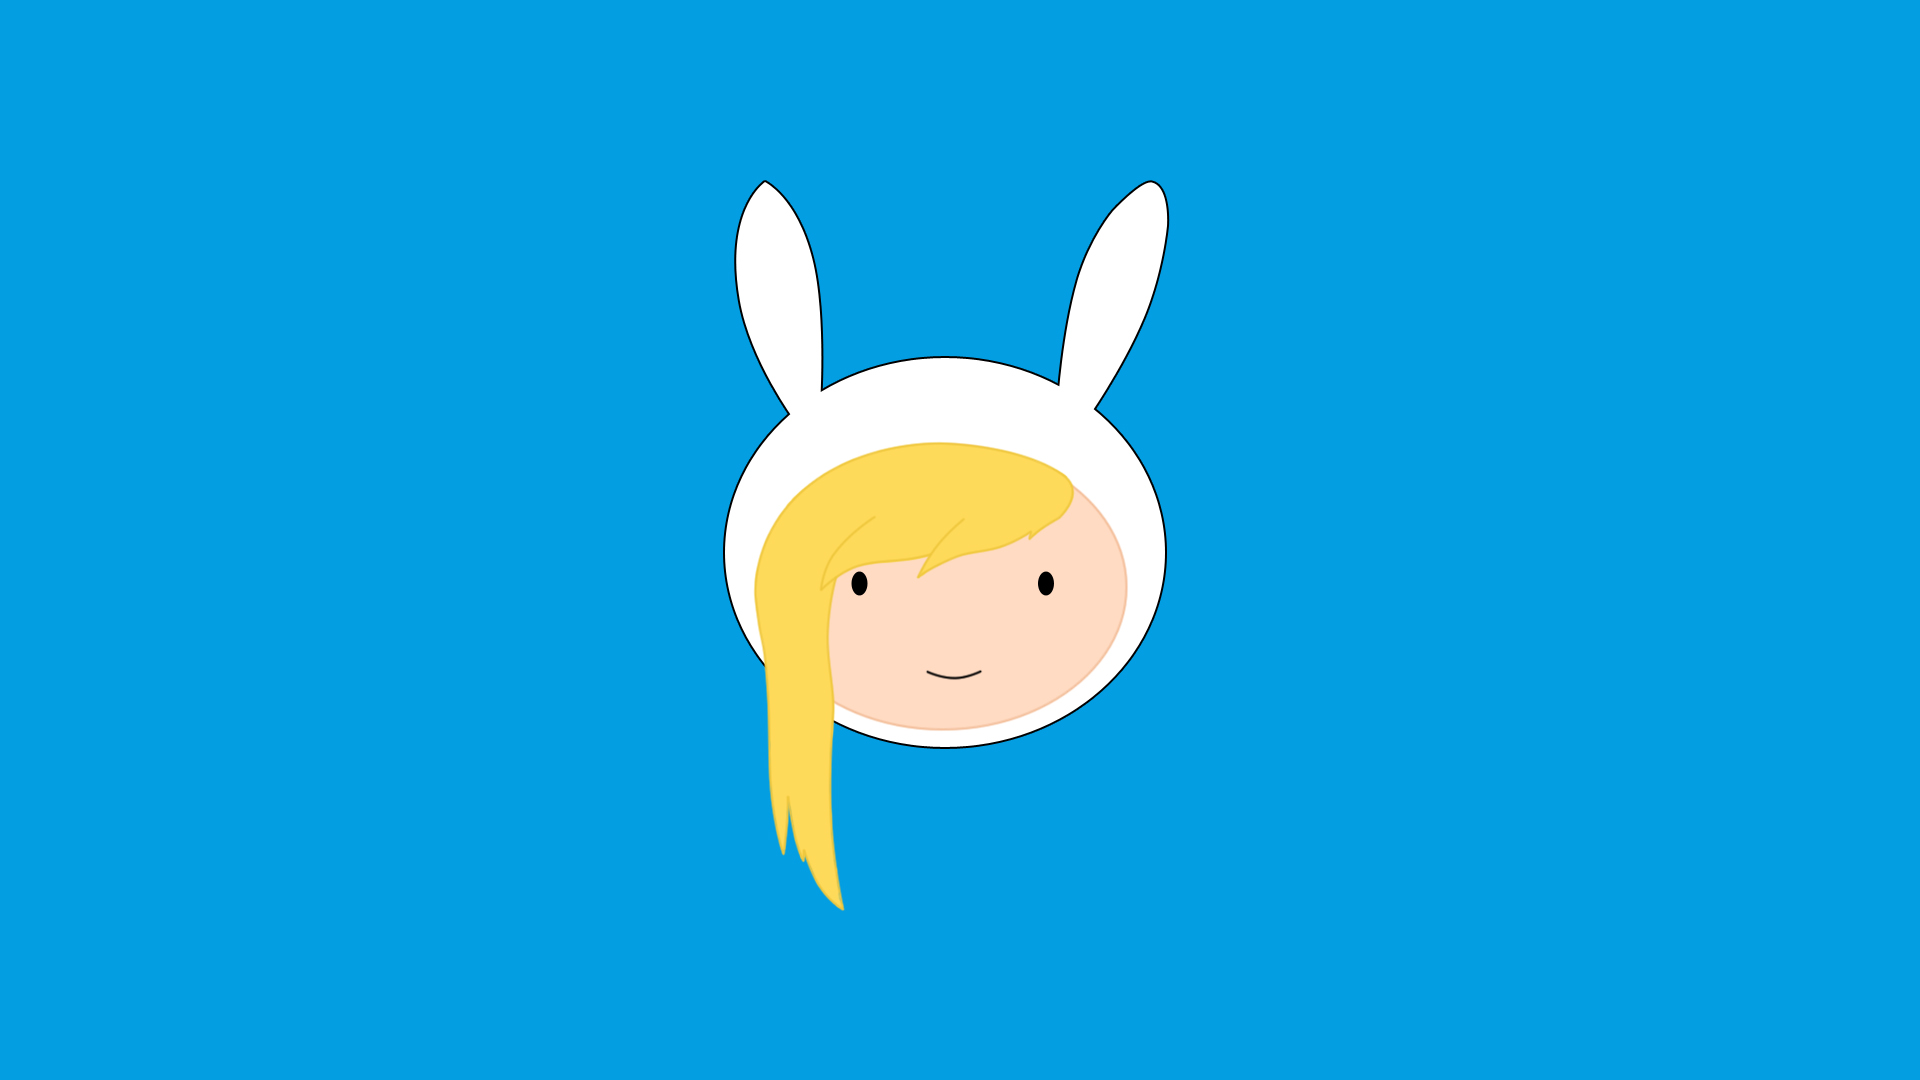 Adventure time wallpaper for computer and phone image mod db view original thecheapjerseys Gallery